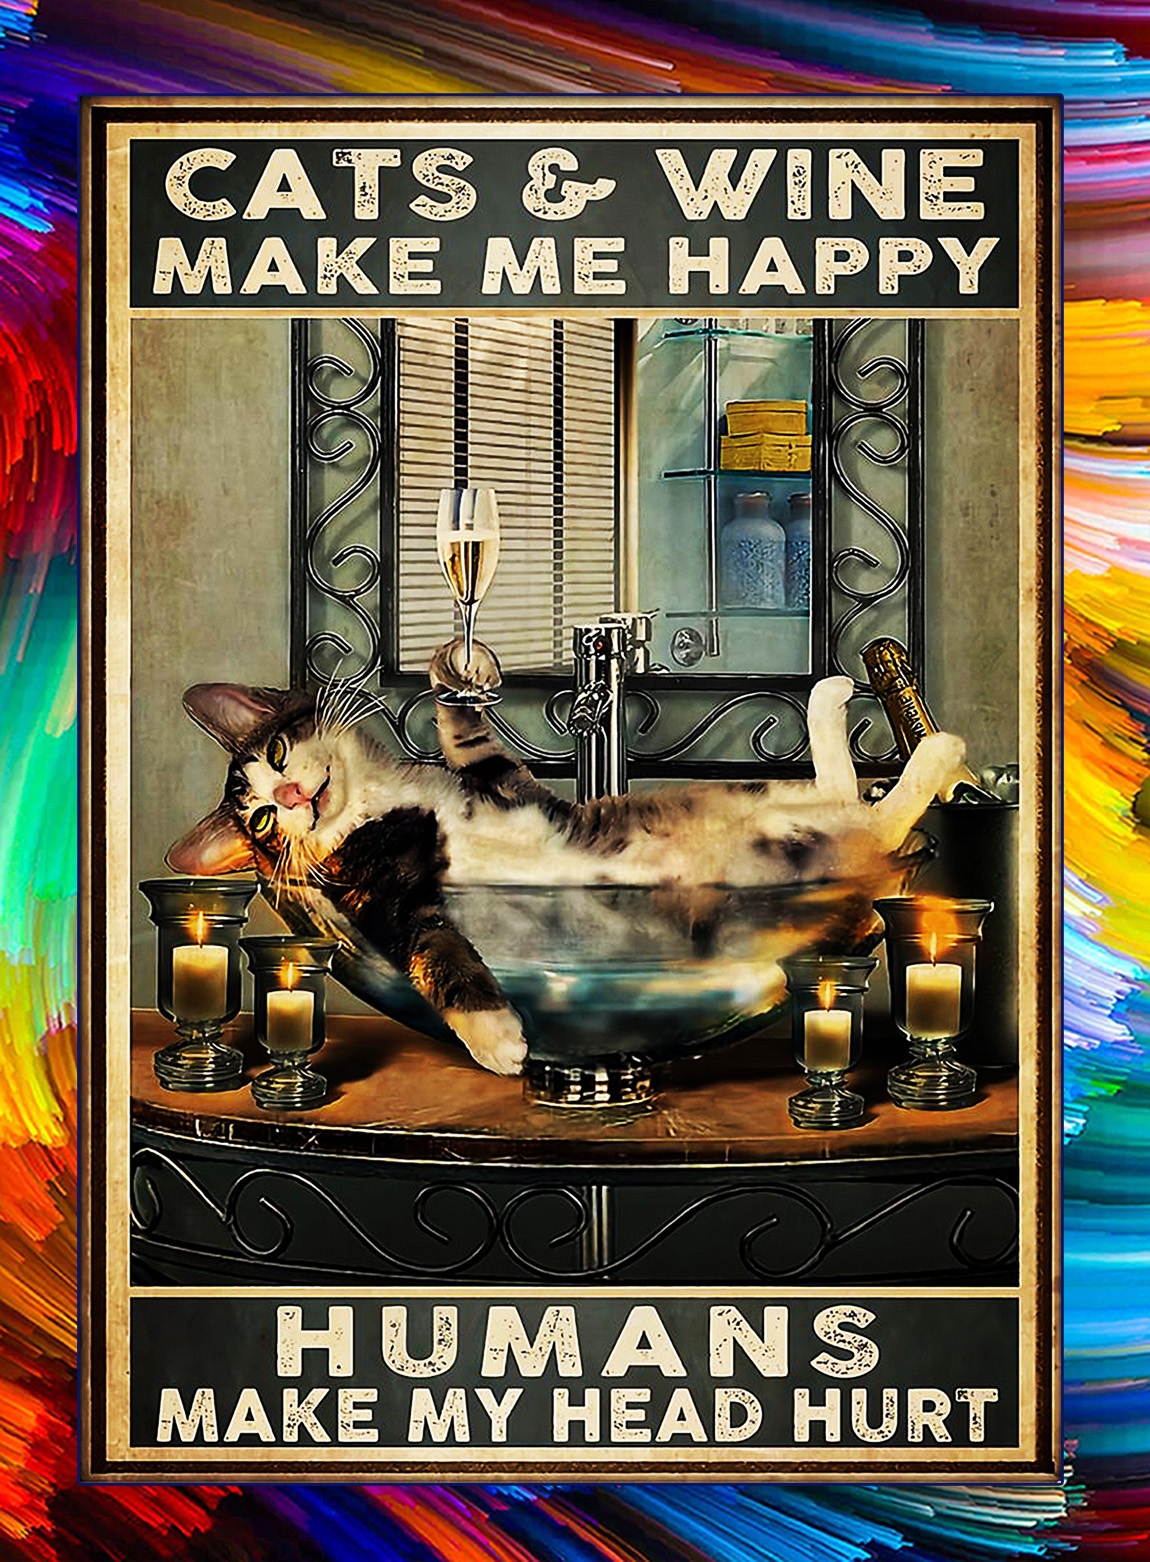 Cats and wine make me happy humans make my head hurt poster - A3